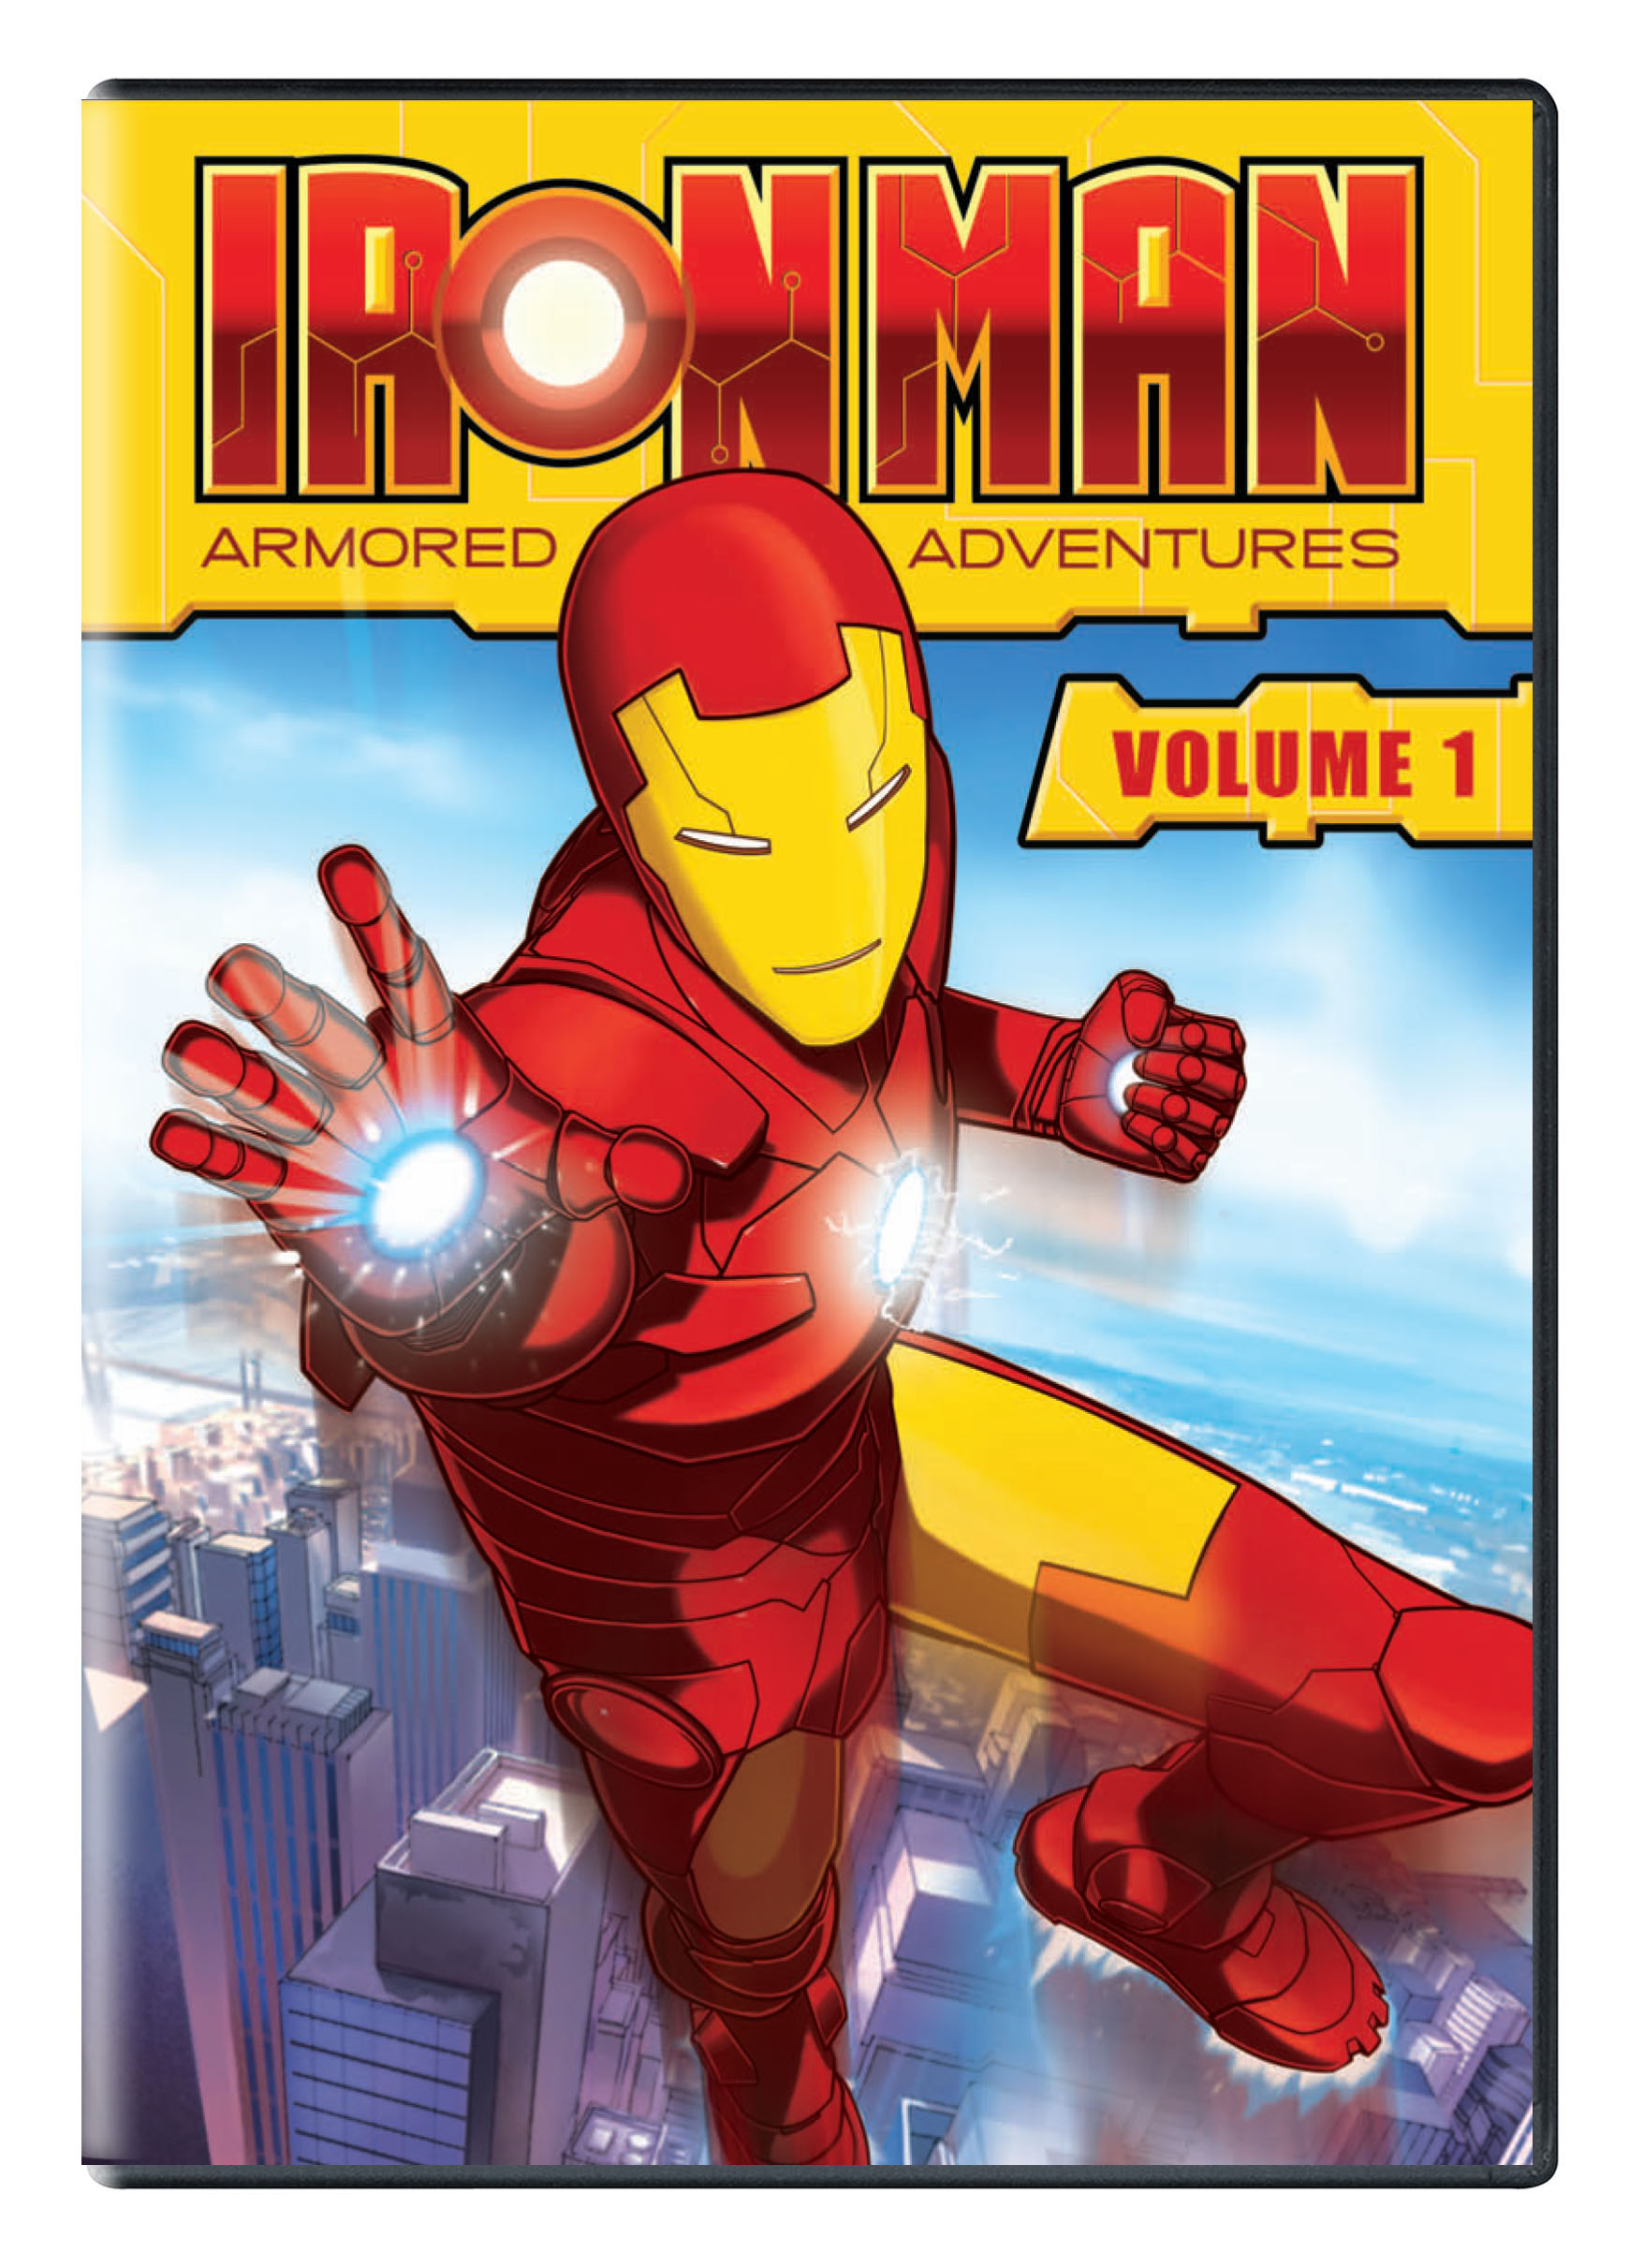 Iron Man Armored Adventures Volume 1 Marvel Animation